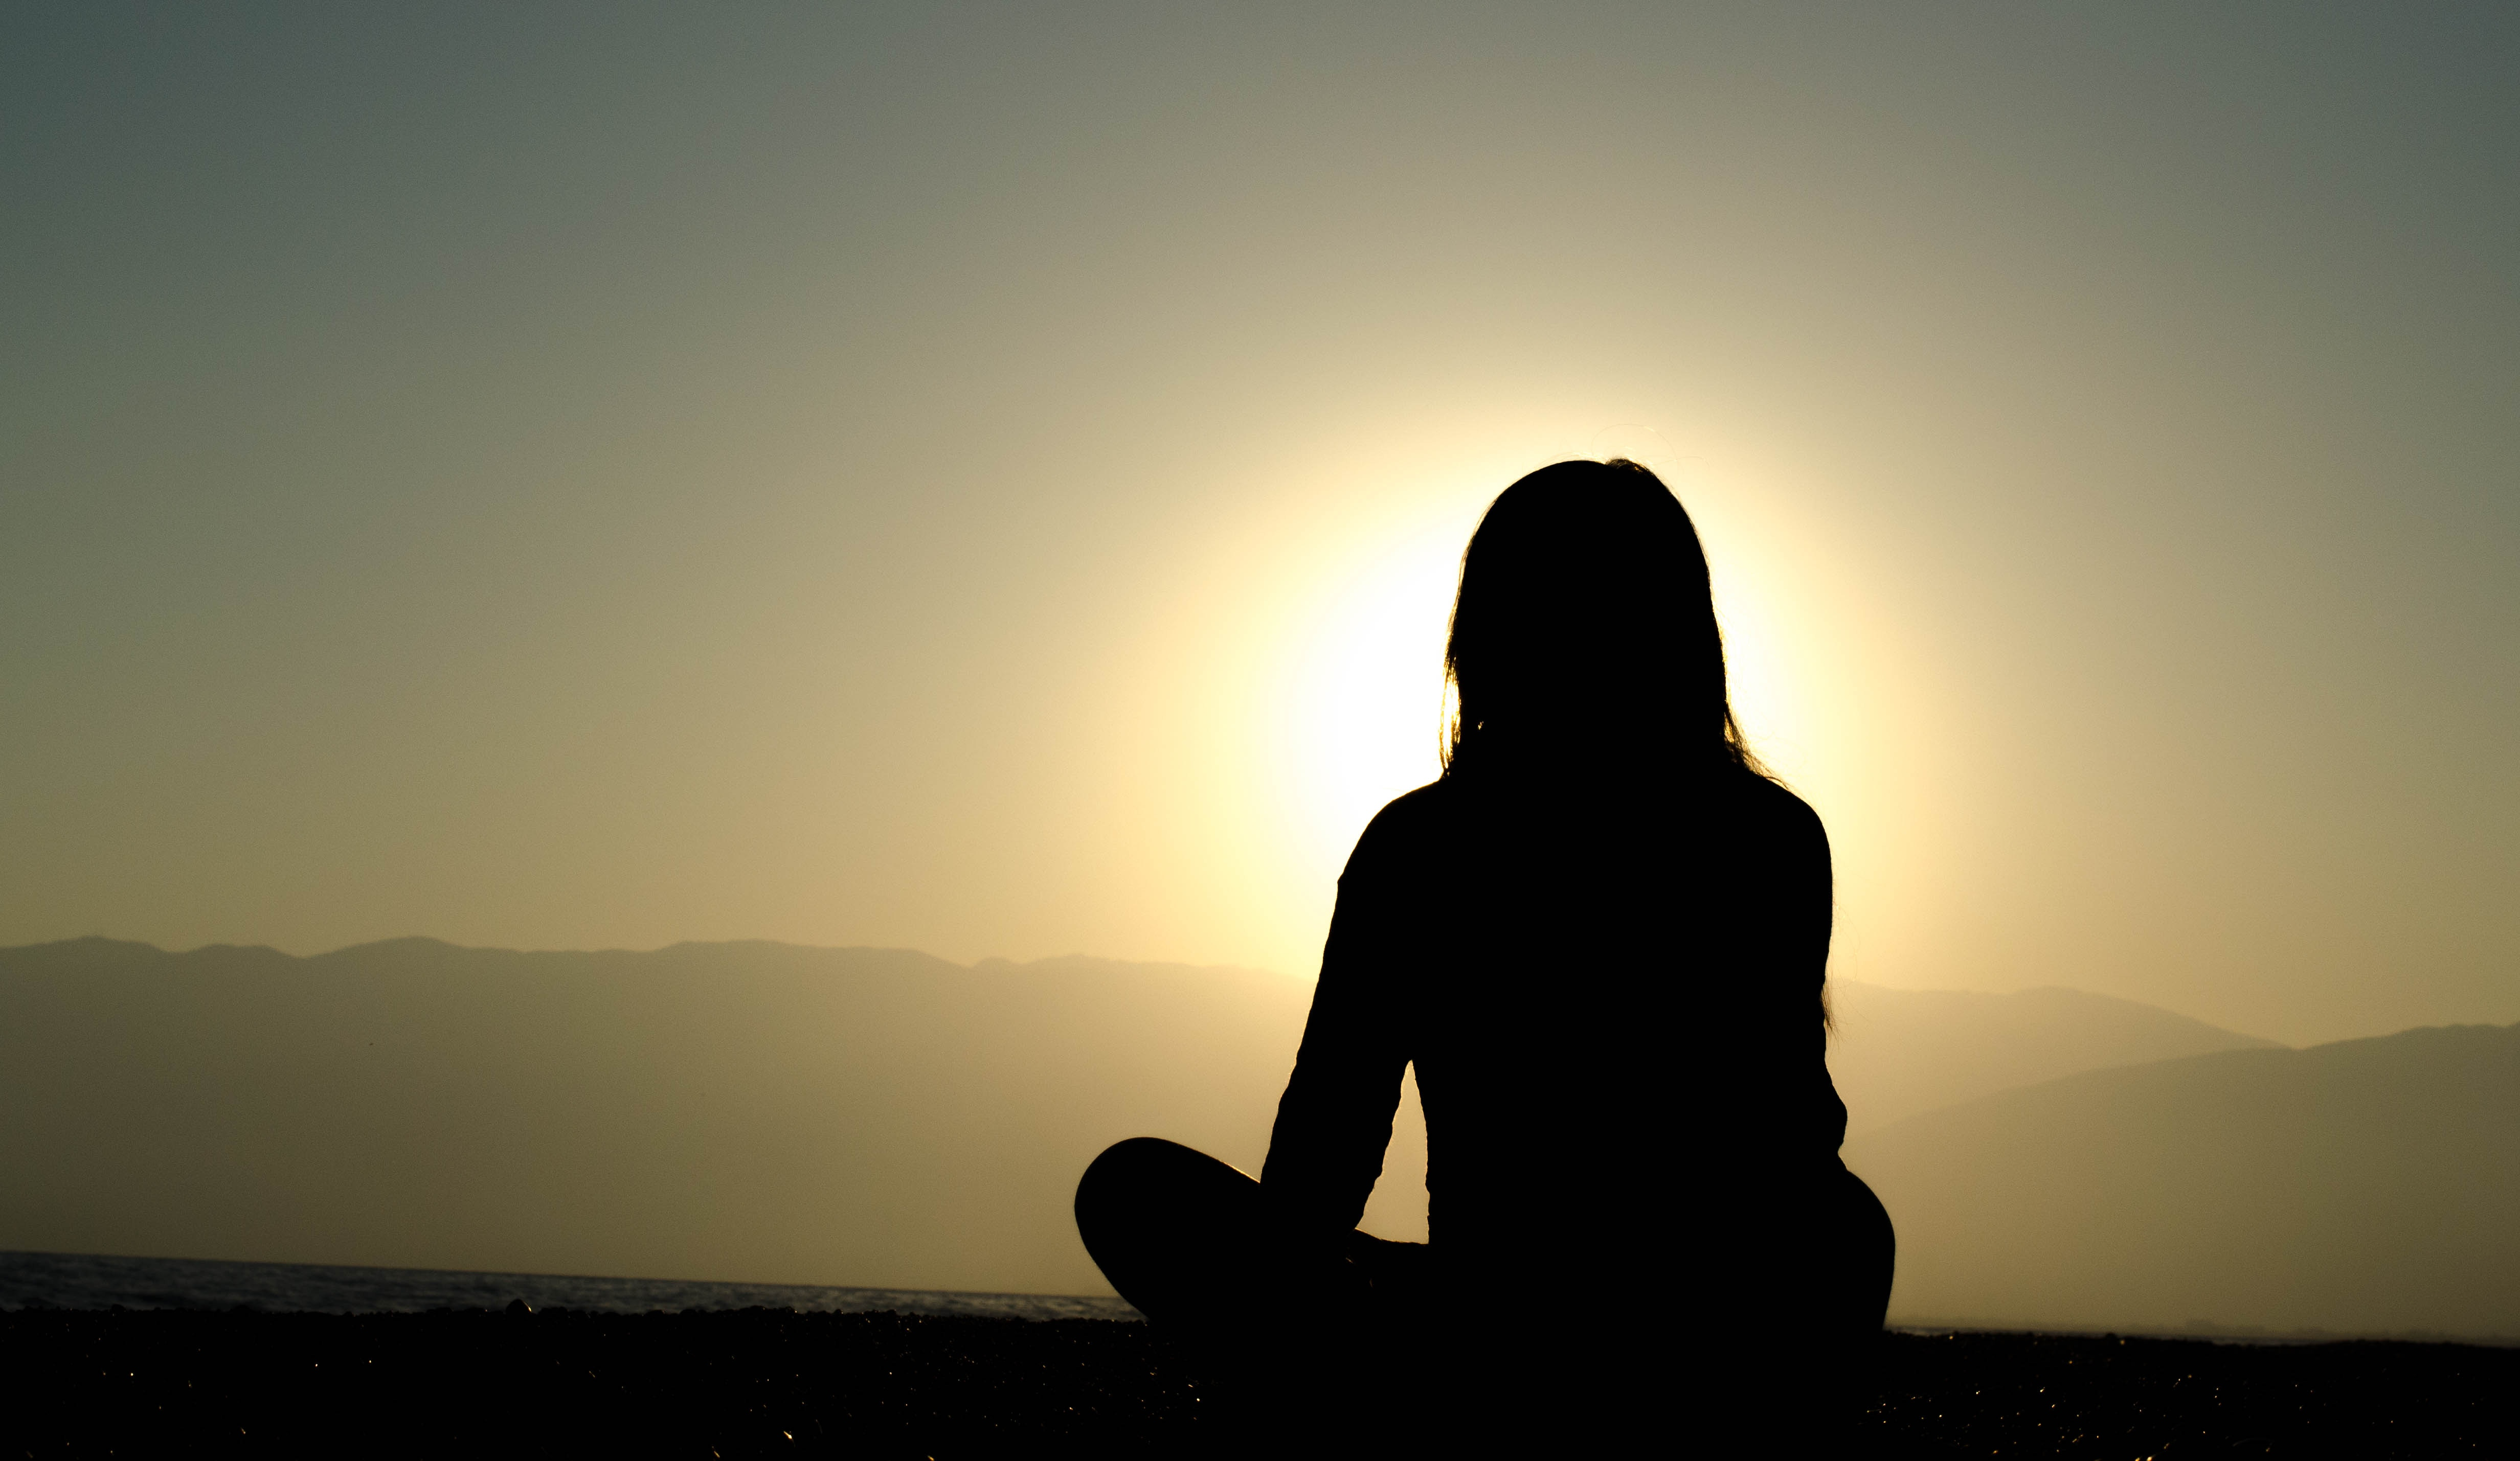 Woman In Meditation, Kava Root Helps With Anxiety and Depression